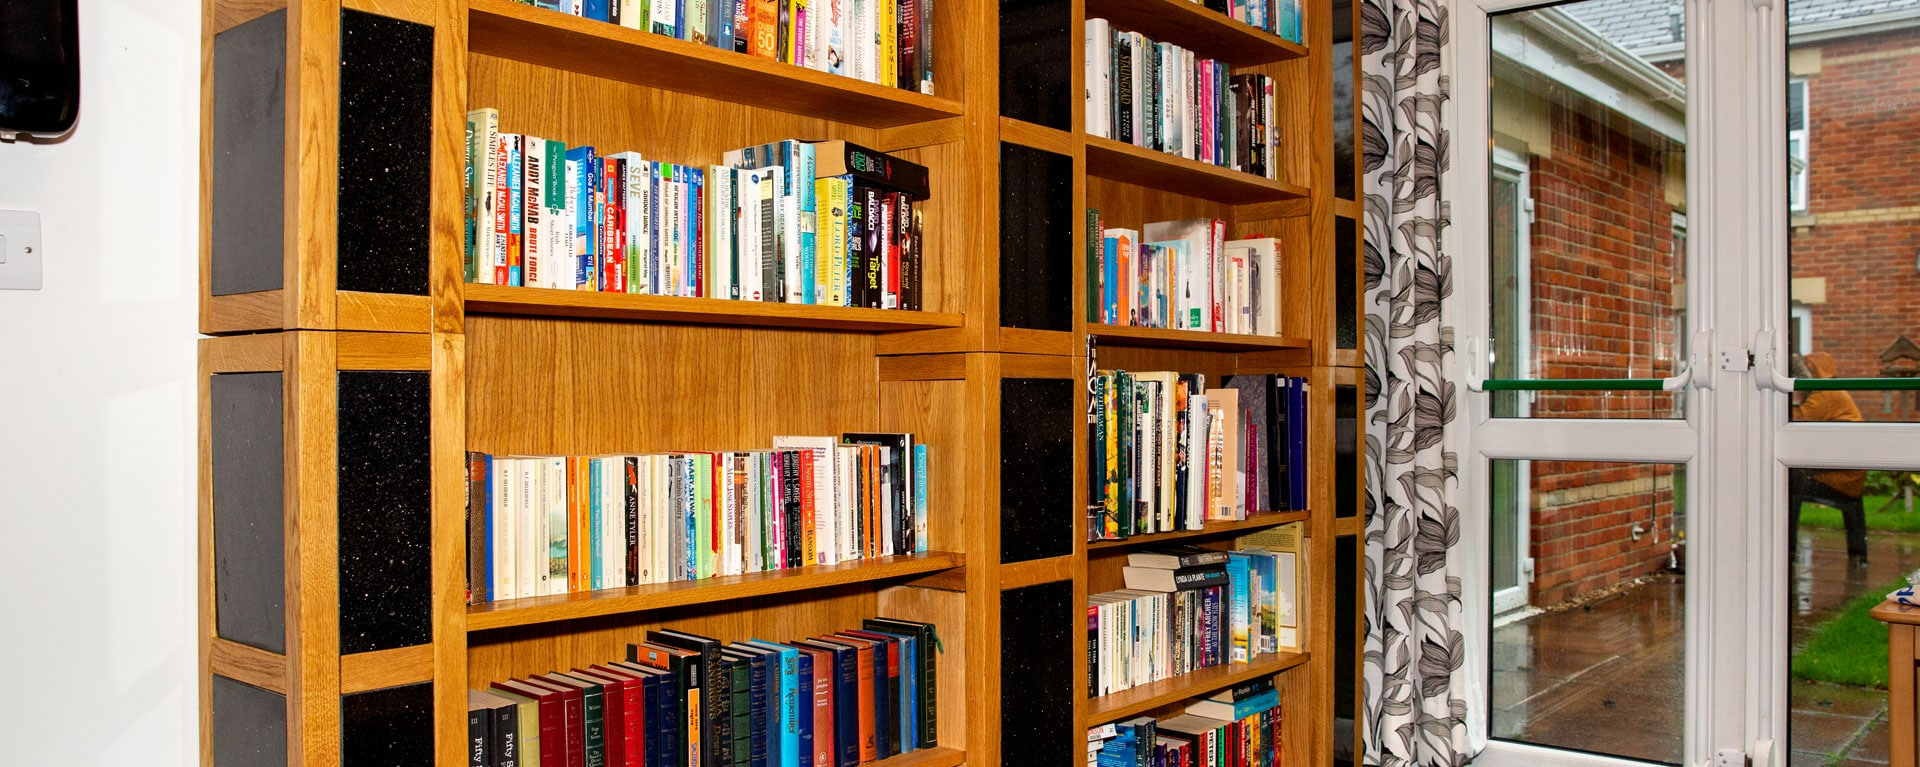 Book shelf in Laurel care home's library